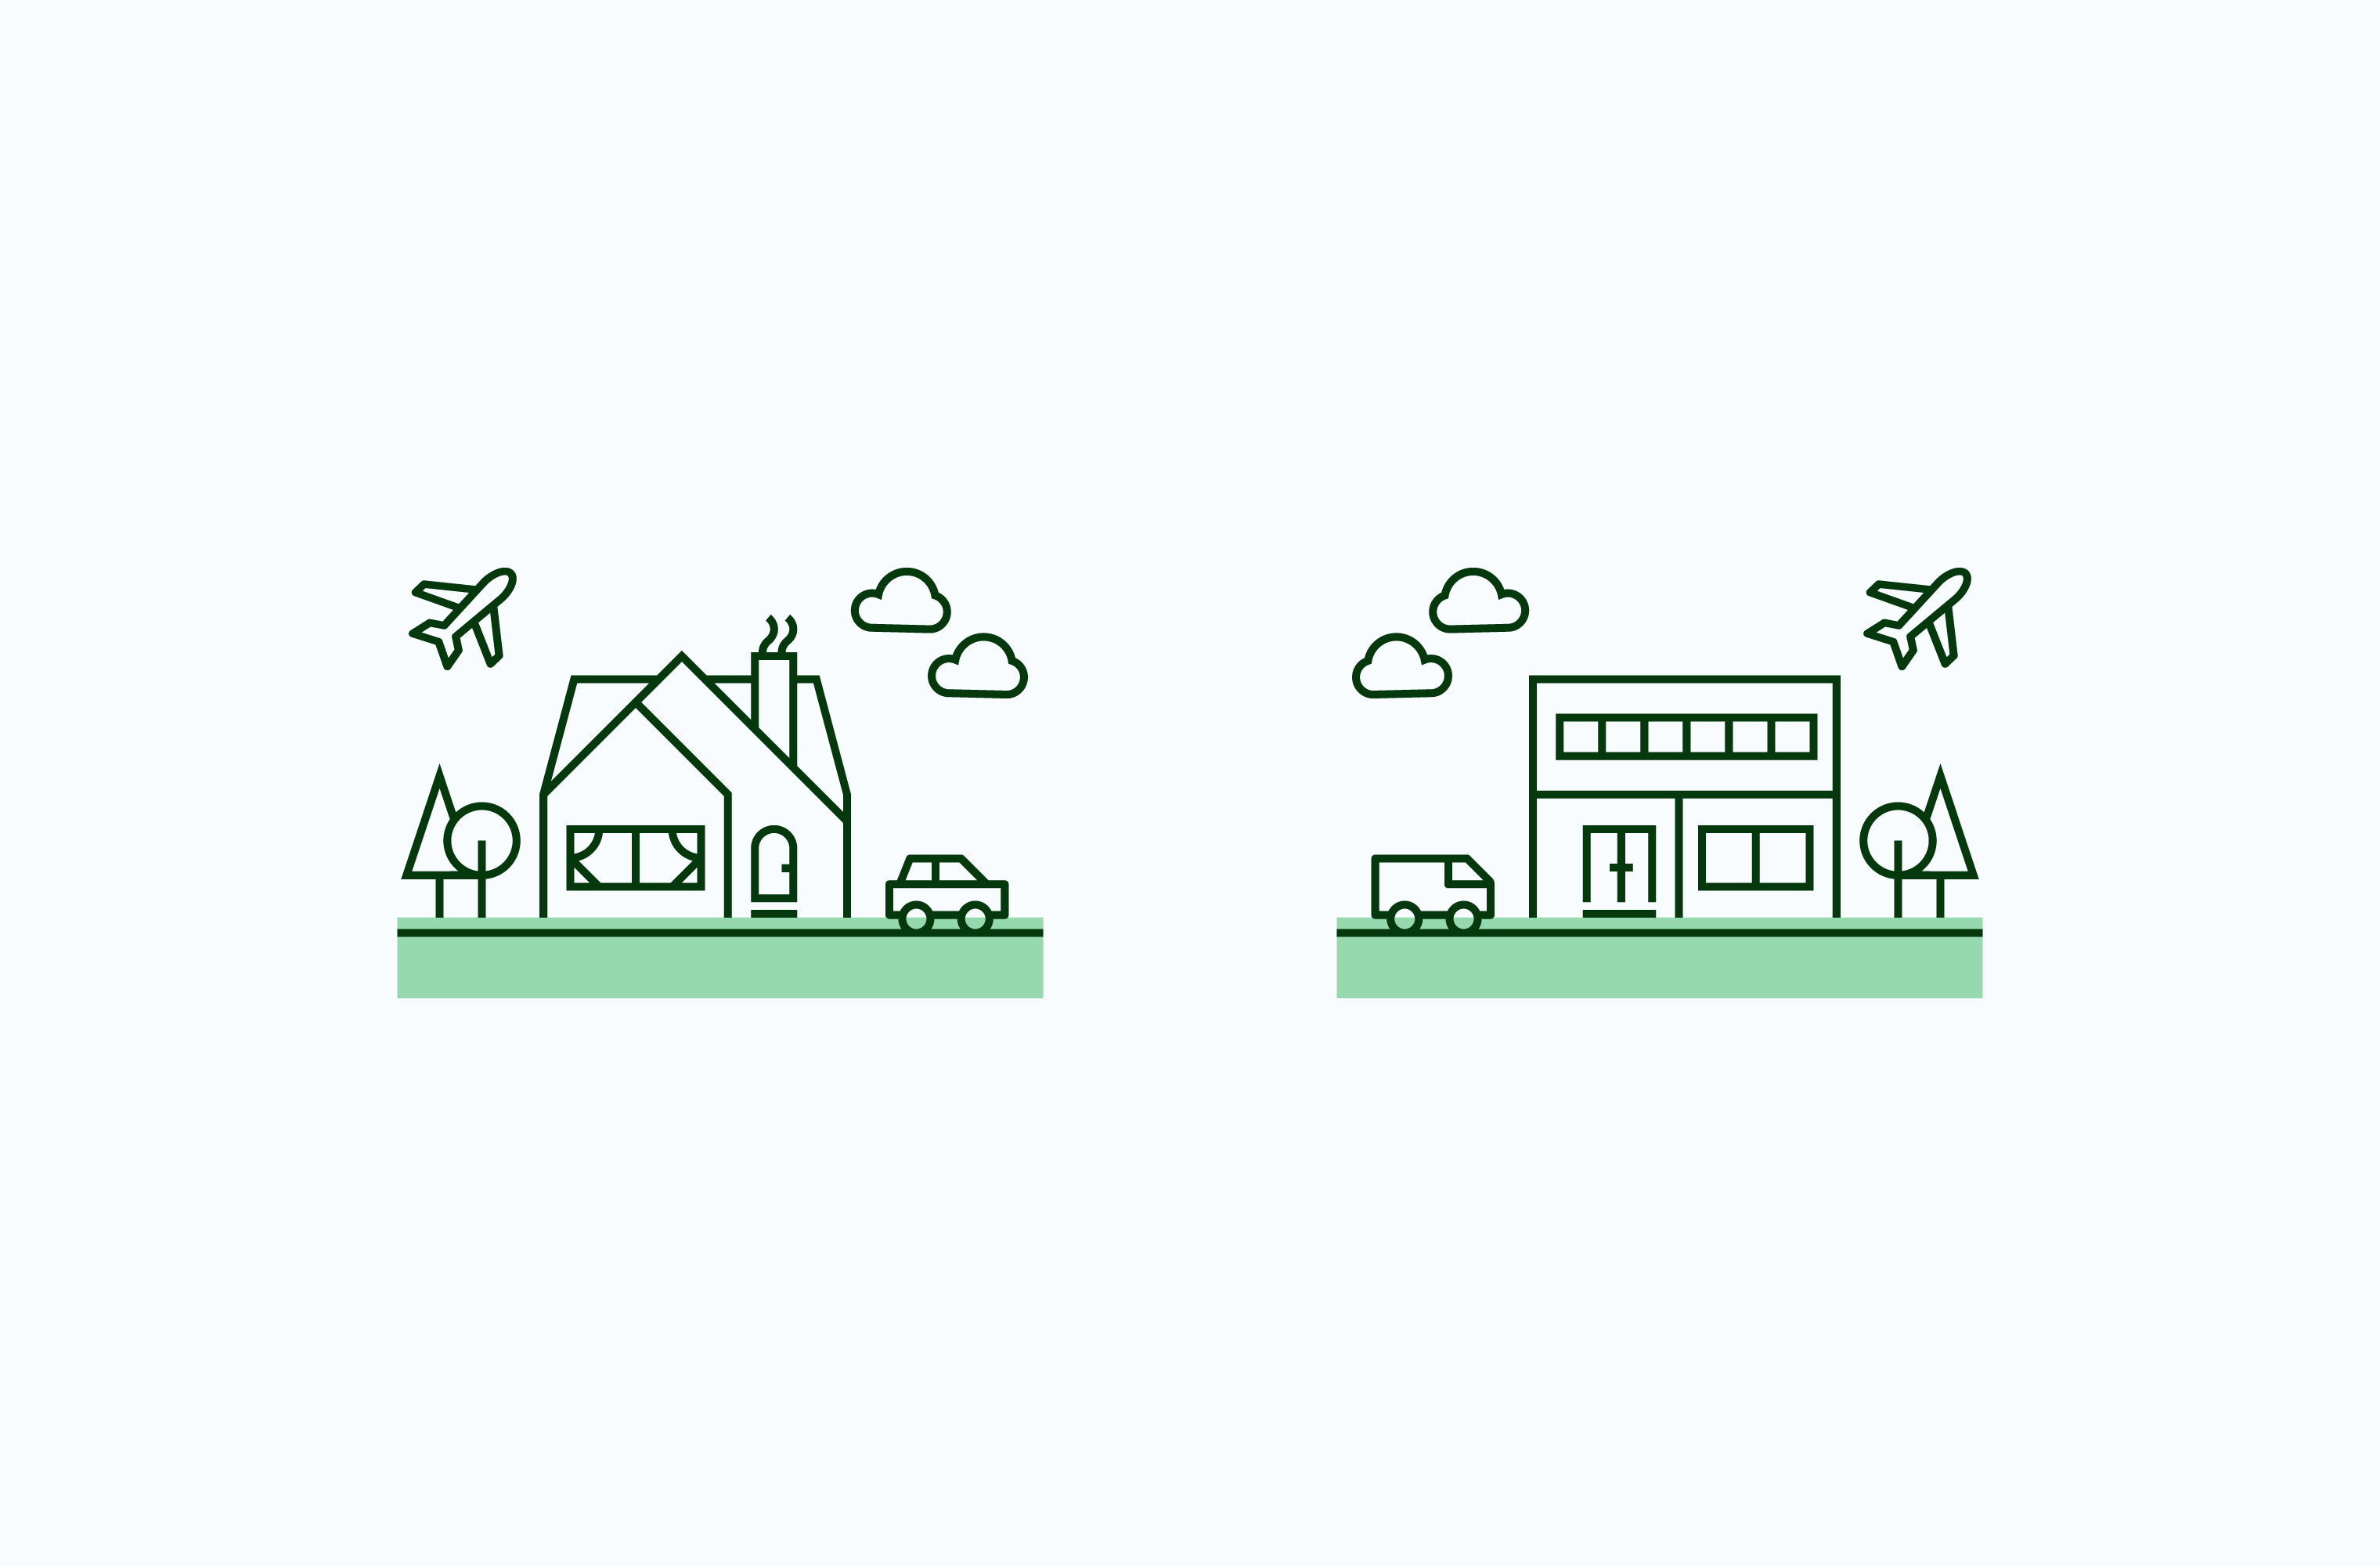 Carbonfund home and work icon set